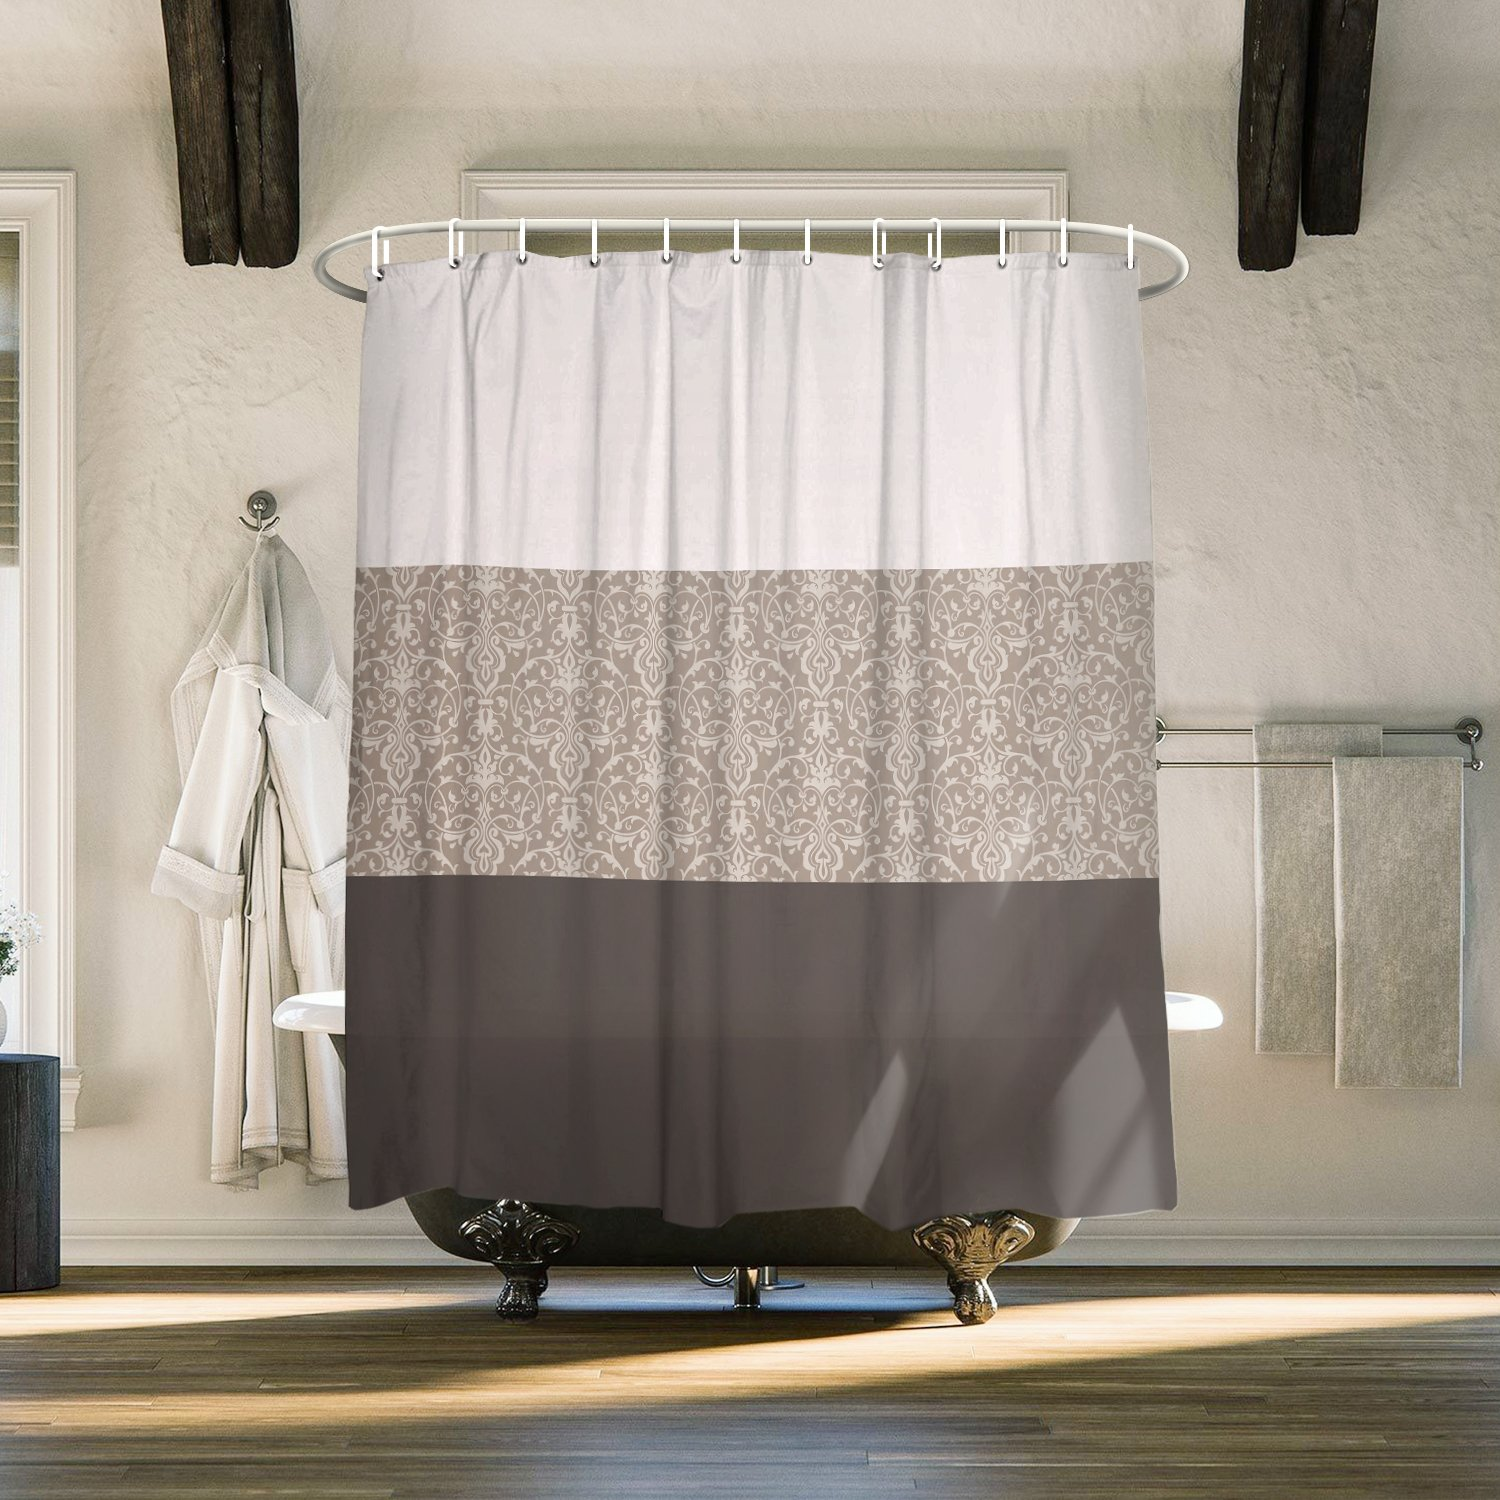 Cloud Dream Home Chateau Striped Shower Curtian Set,Waterproof 100% Polyester Fabric Shower Curtain for Bathroom,84 Inches Extra Long,Taupe